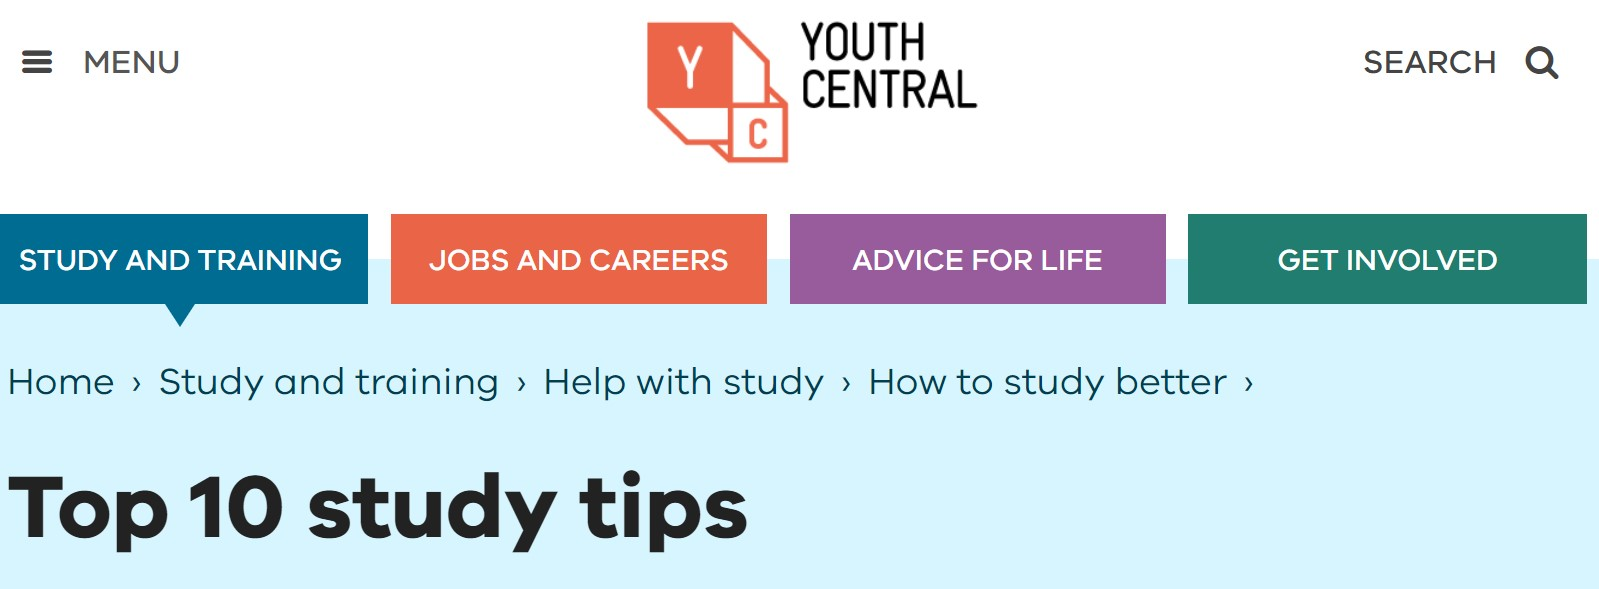 Top 10 Study Tips